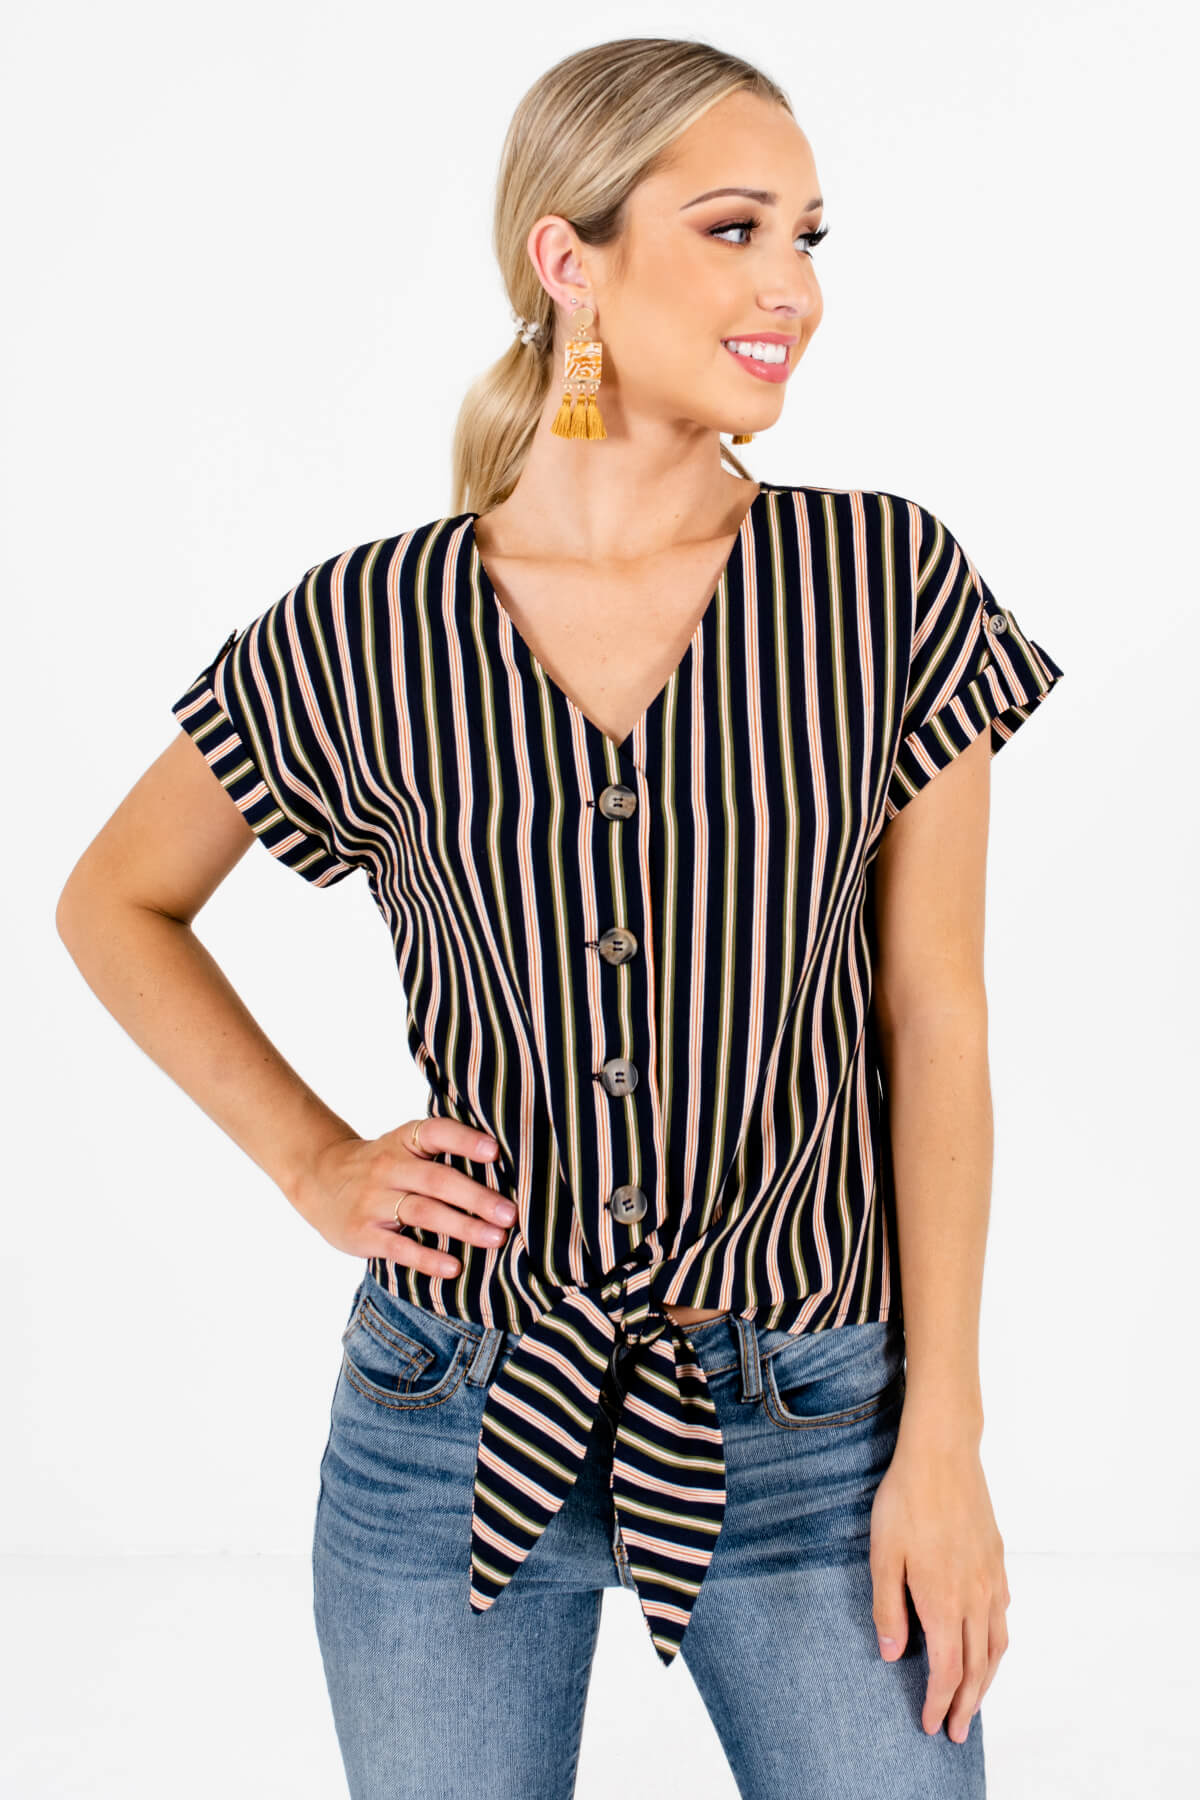 Navy Olive and Rust Striped Boutique Button-Up Tops for Women